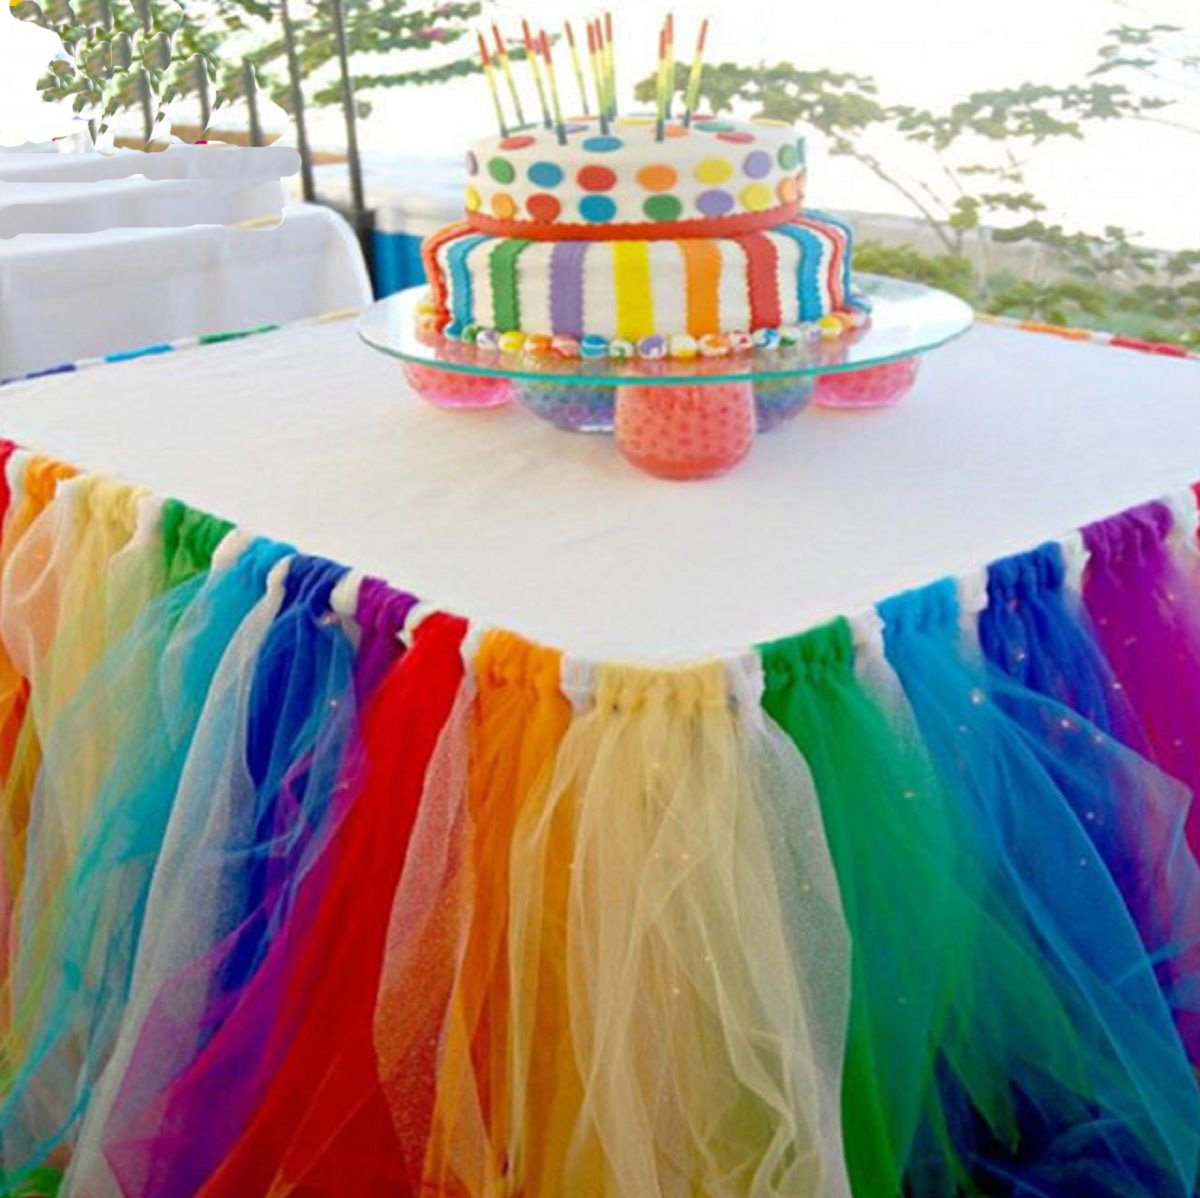 Amazon Stuffwholesale Fitted Tulle Table Skirt Baby Shower Birthday Party Cake Decoration Rainbow Toys Games